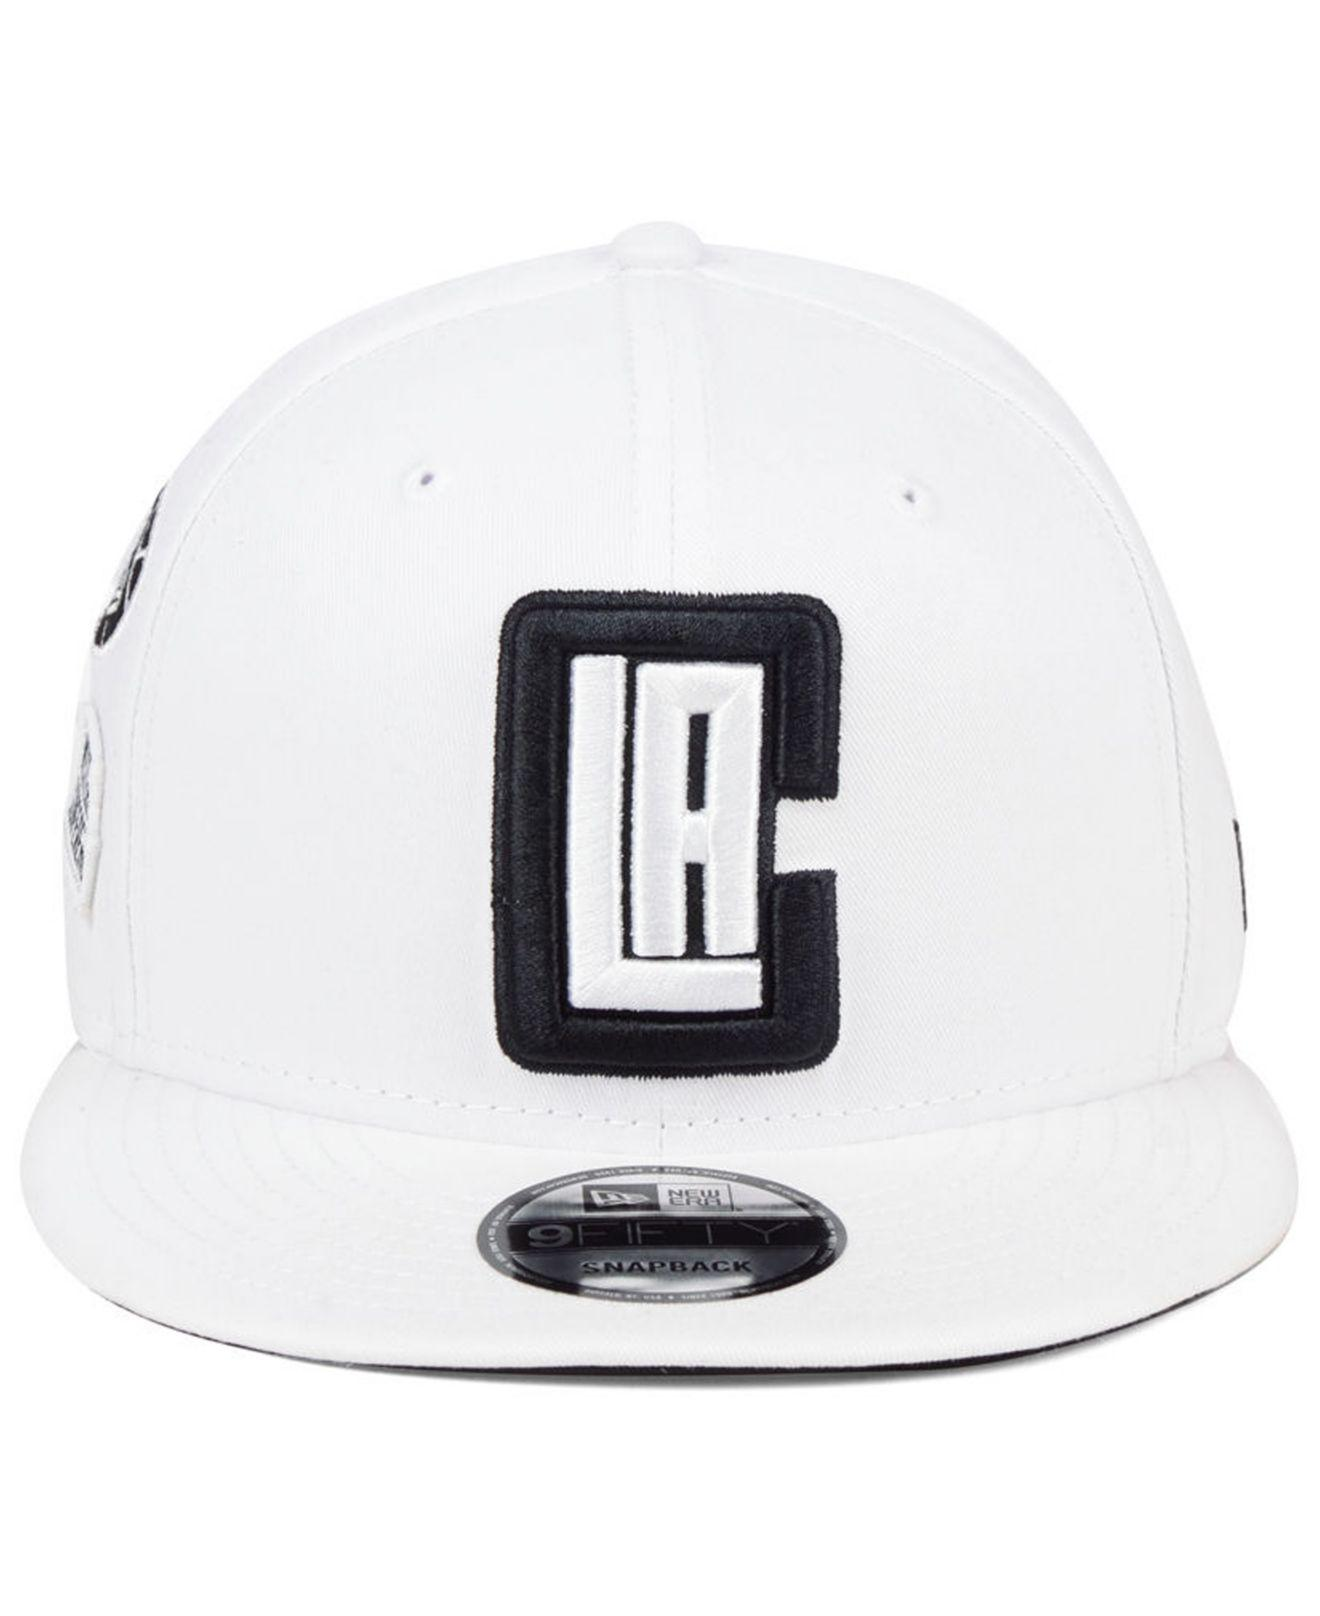 cheap for discount 58026 c6e64 KTZ Los Angeles Clippers Night Sky 9fifty Snapback Cap in White for Men -  Lyst